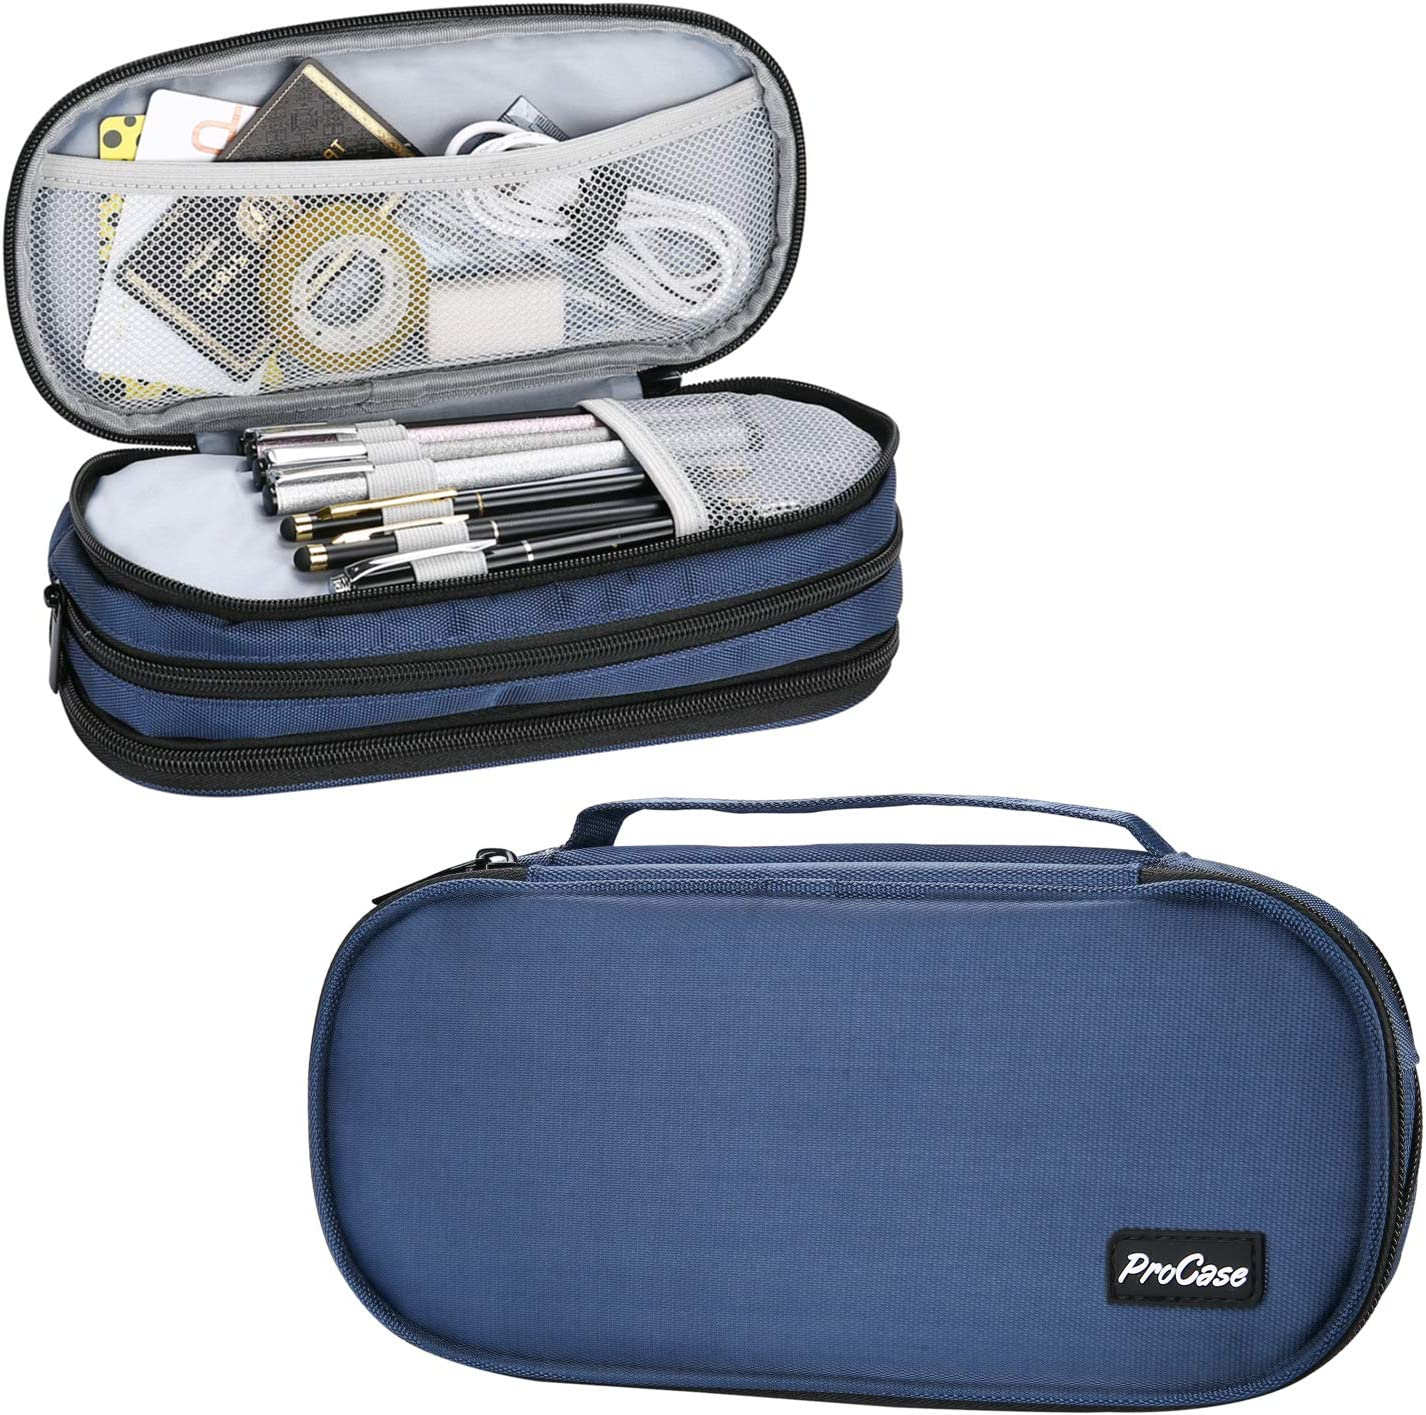 ProCase Big Capacity Pencil Case Pen Bag, Handheld Pencil Holder Pouch Pen Organizer Students Stationery Pouch with Durable Zipper Multi Compartments for School & Office Supplies –Navy